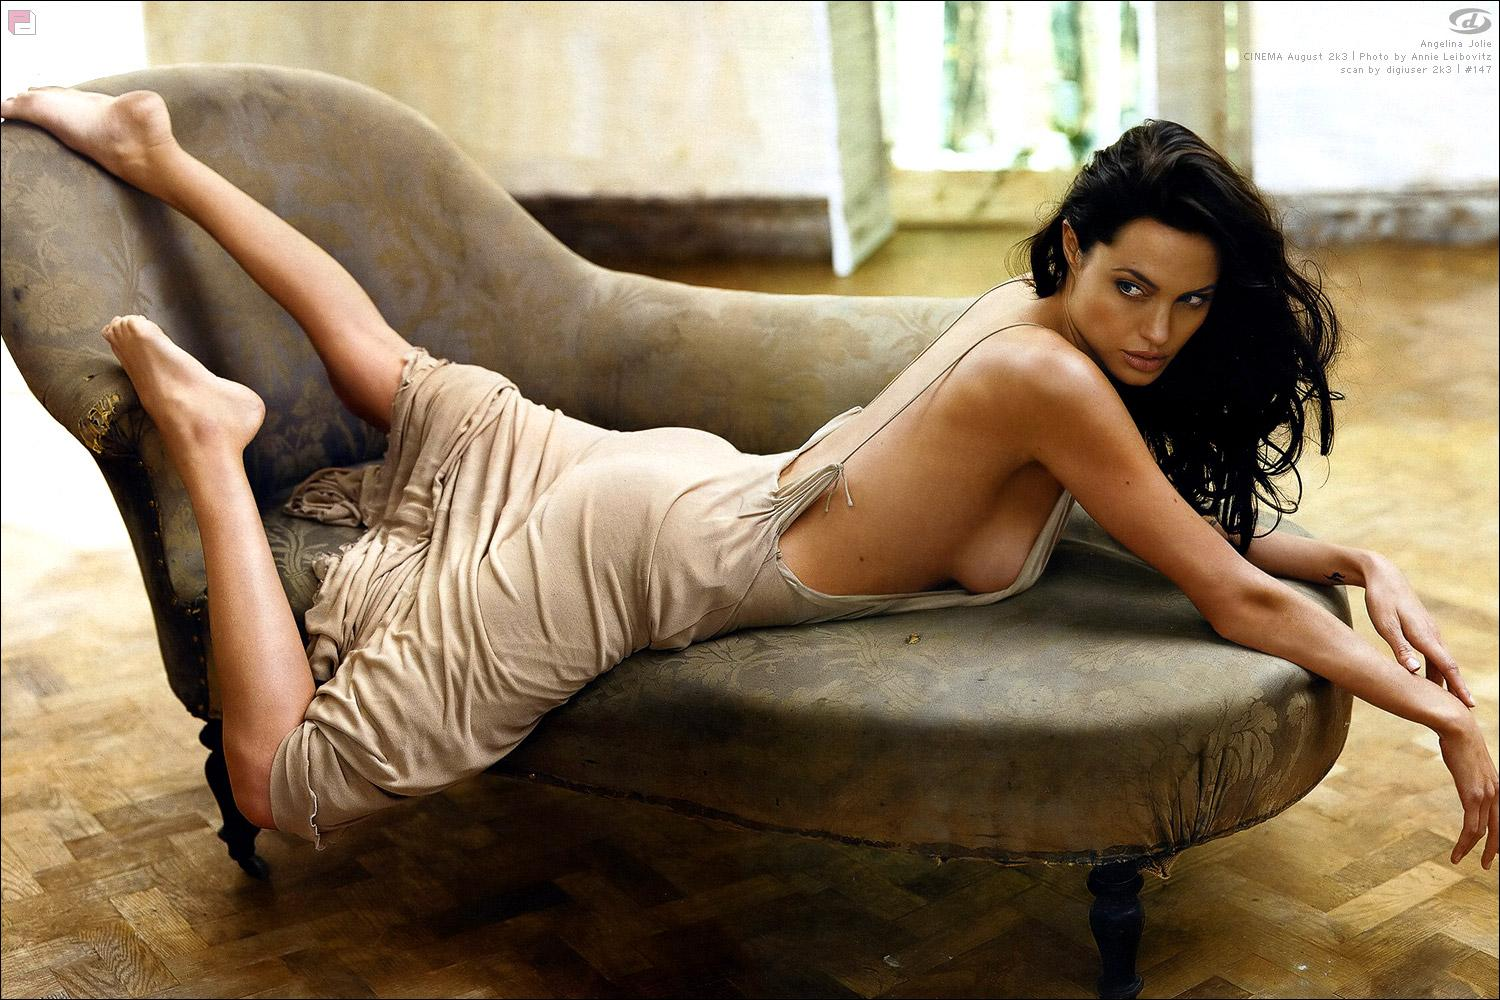 Calendar Yorkshire Tv Show Channel 5 Filmon Tv Free Live Tv Movies And Hot Fashion 2011 Angelina Jolie Hot Wallpapers Angelina